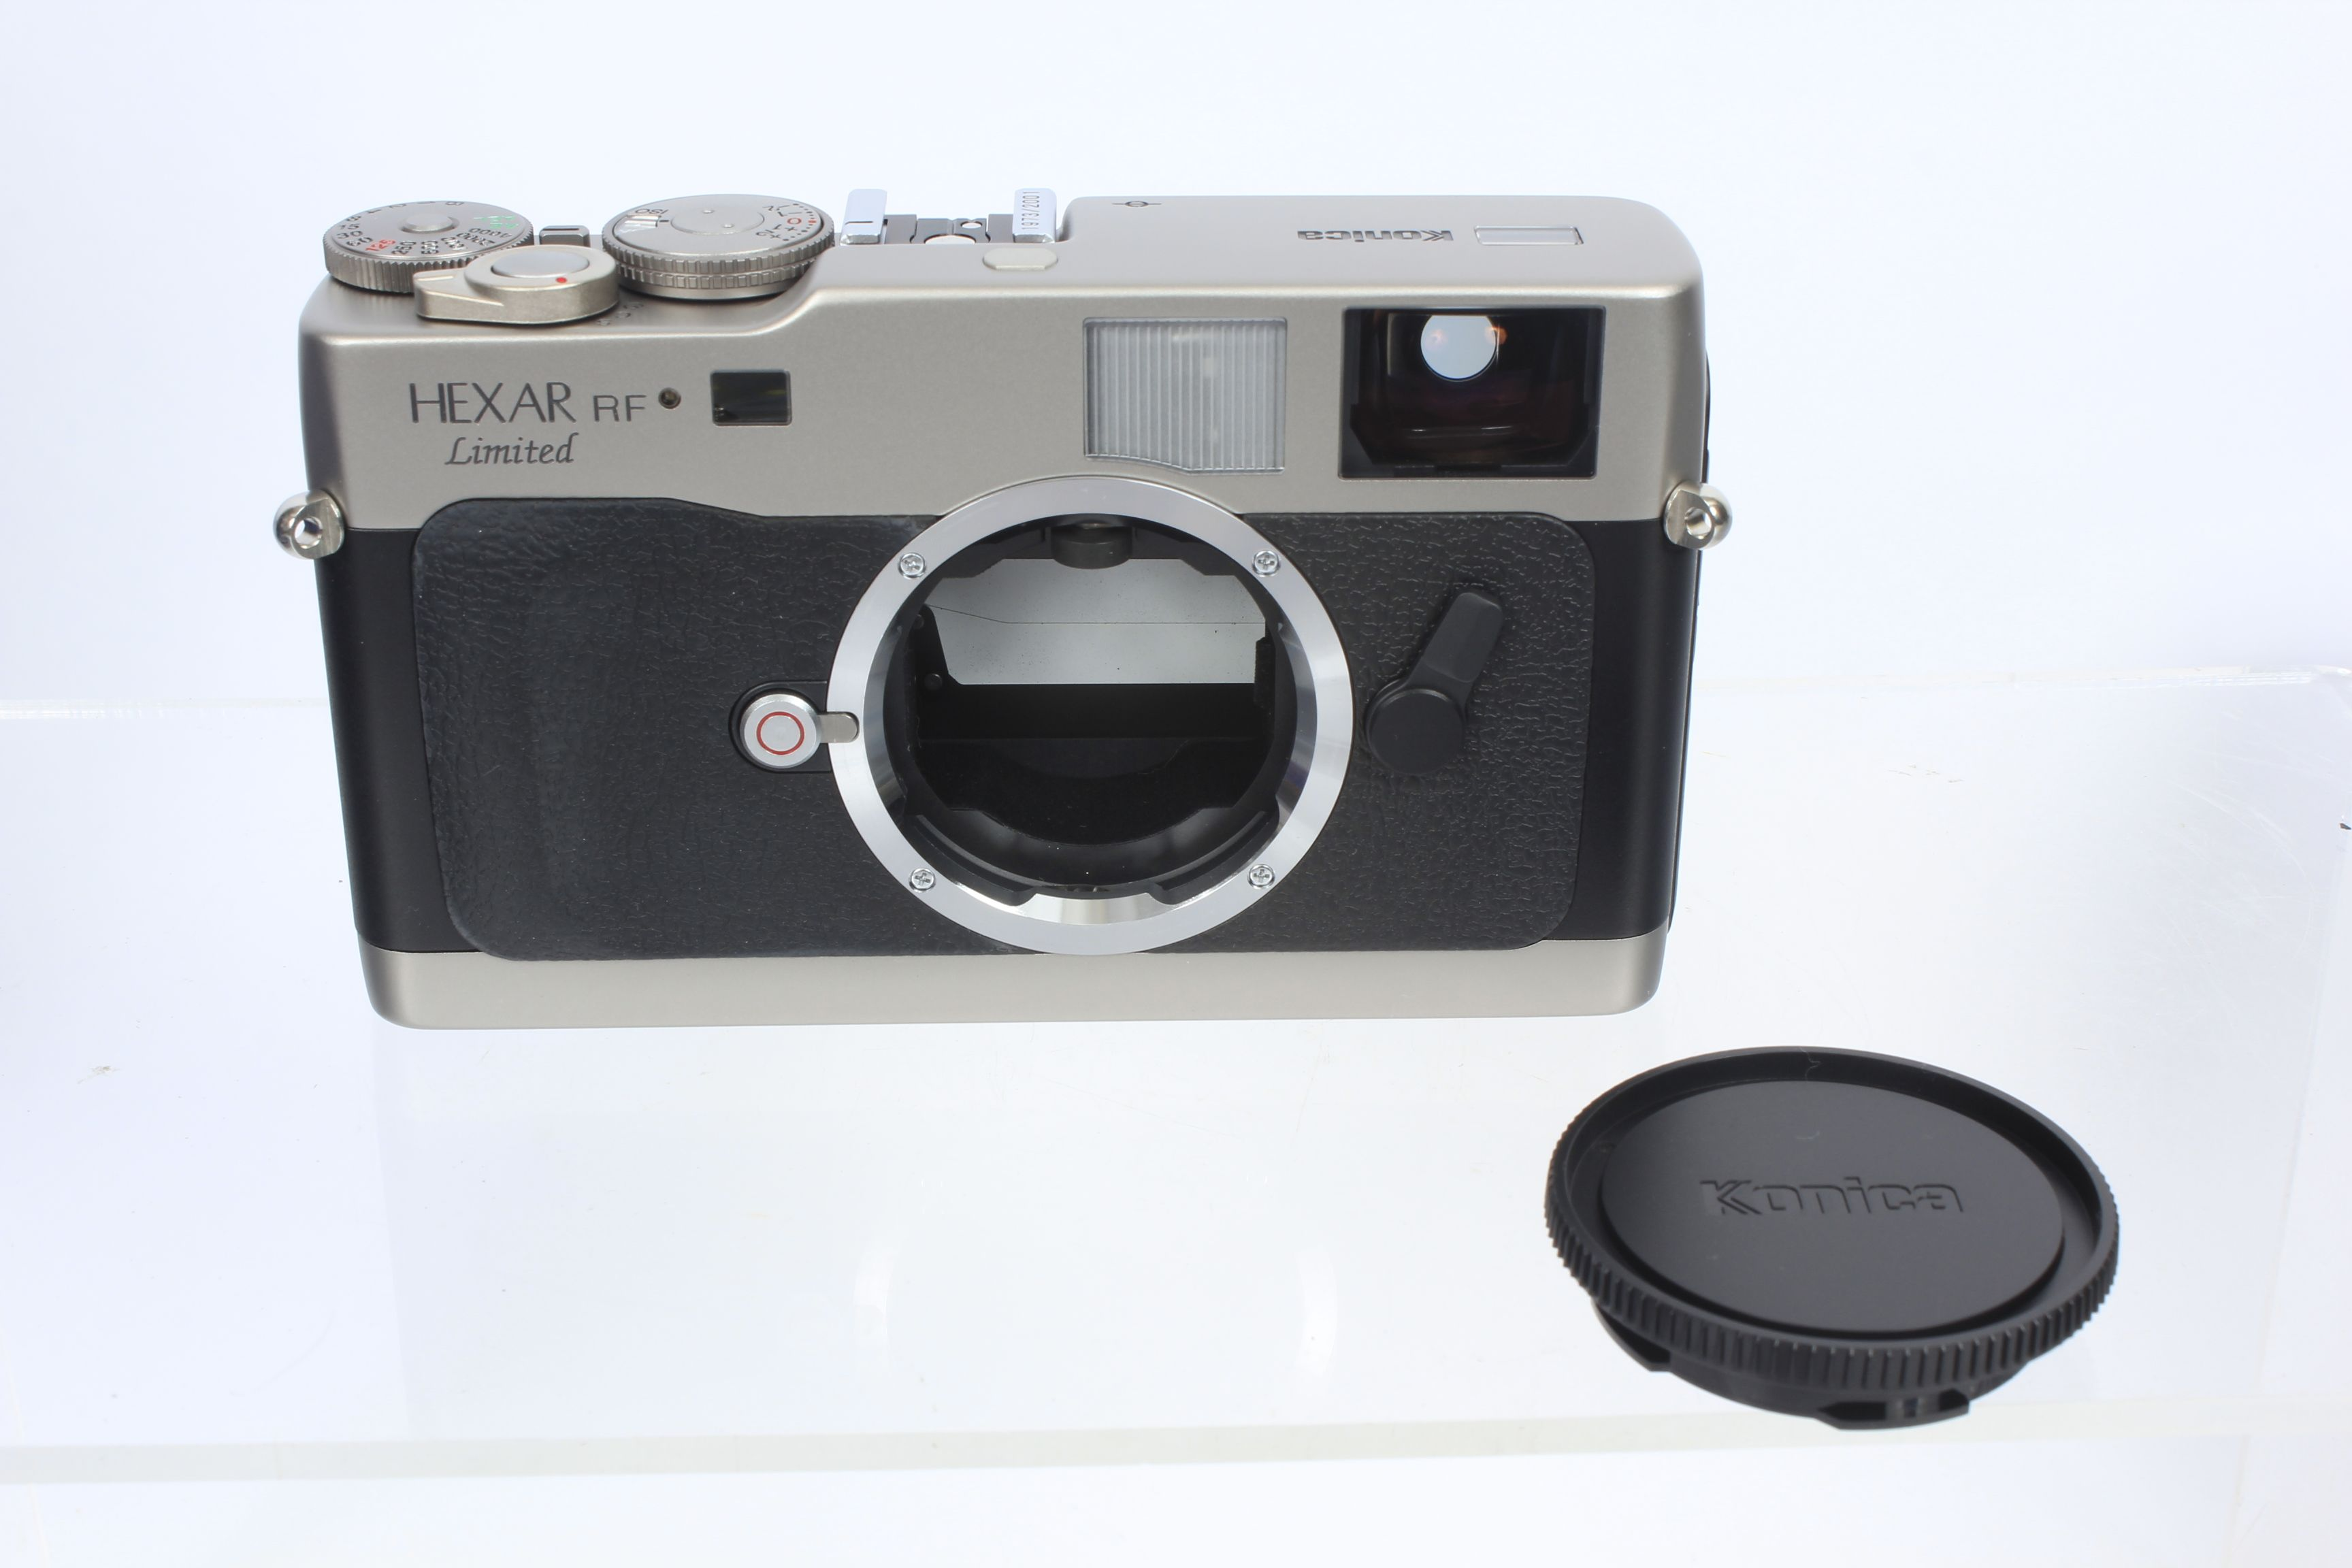 Often times rare is what sells. For example, this Konica Hexar RF Limited Silver 35mm Rangefinder with 50mm f/1.2 lens went for $3,055.00!  #camera #Film #photography #filmphotography #35mm #rangefinder #Konica #Hexar #knoicahexar